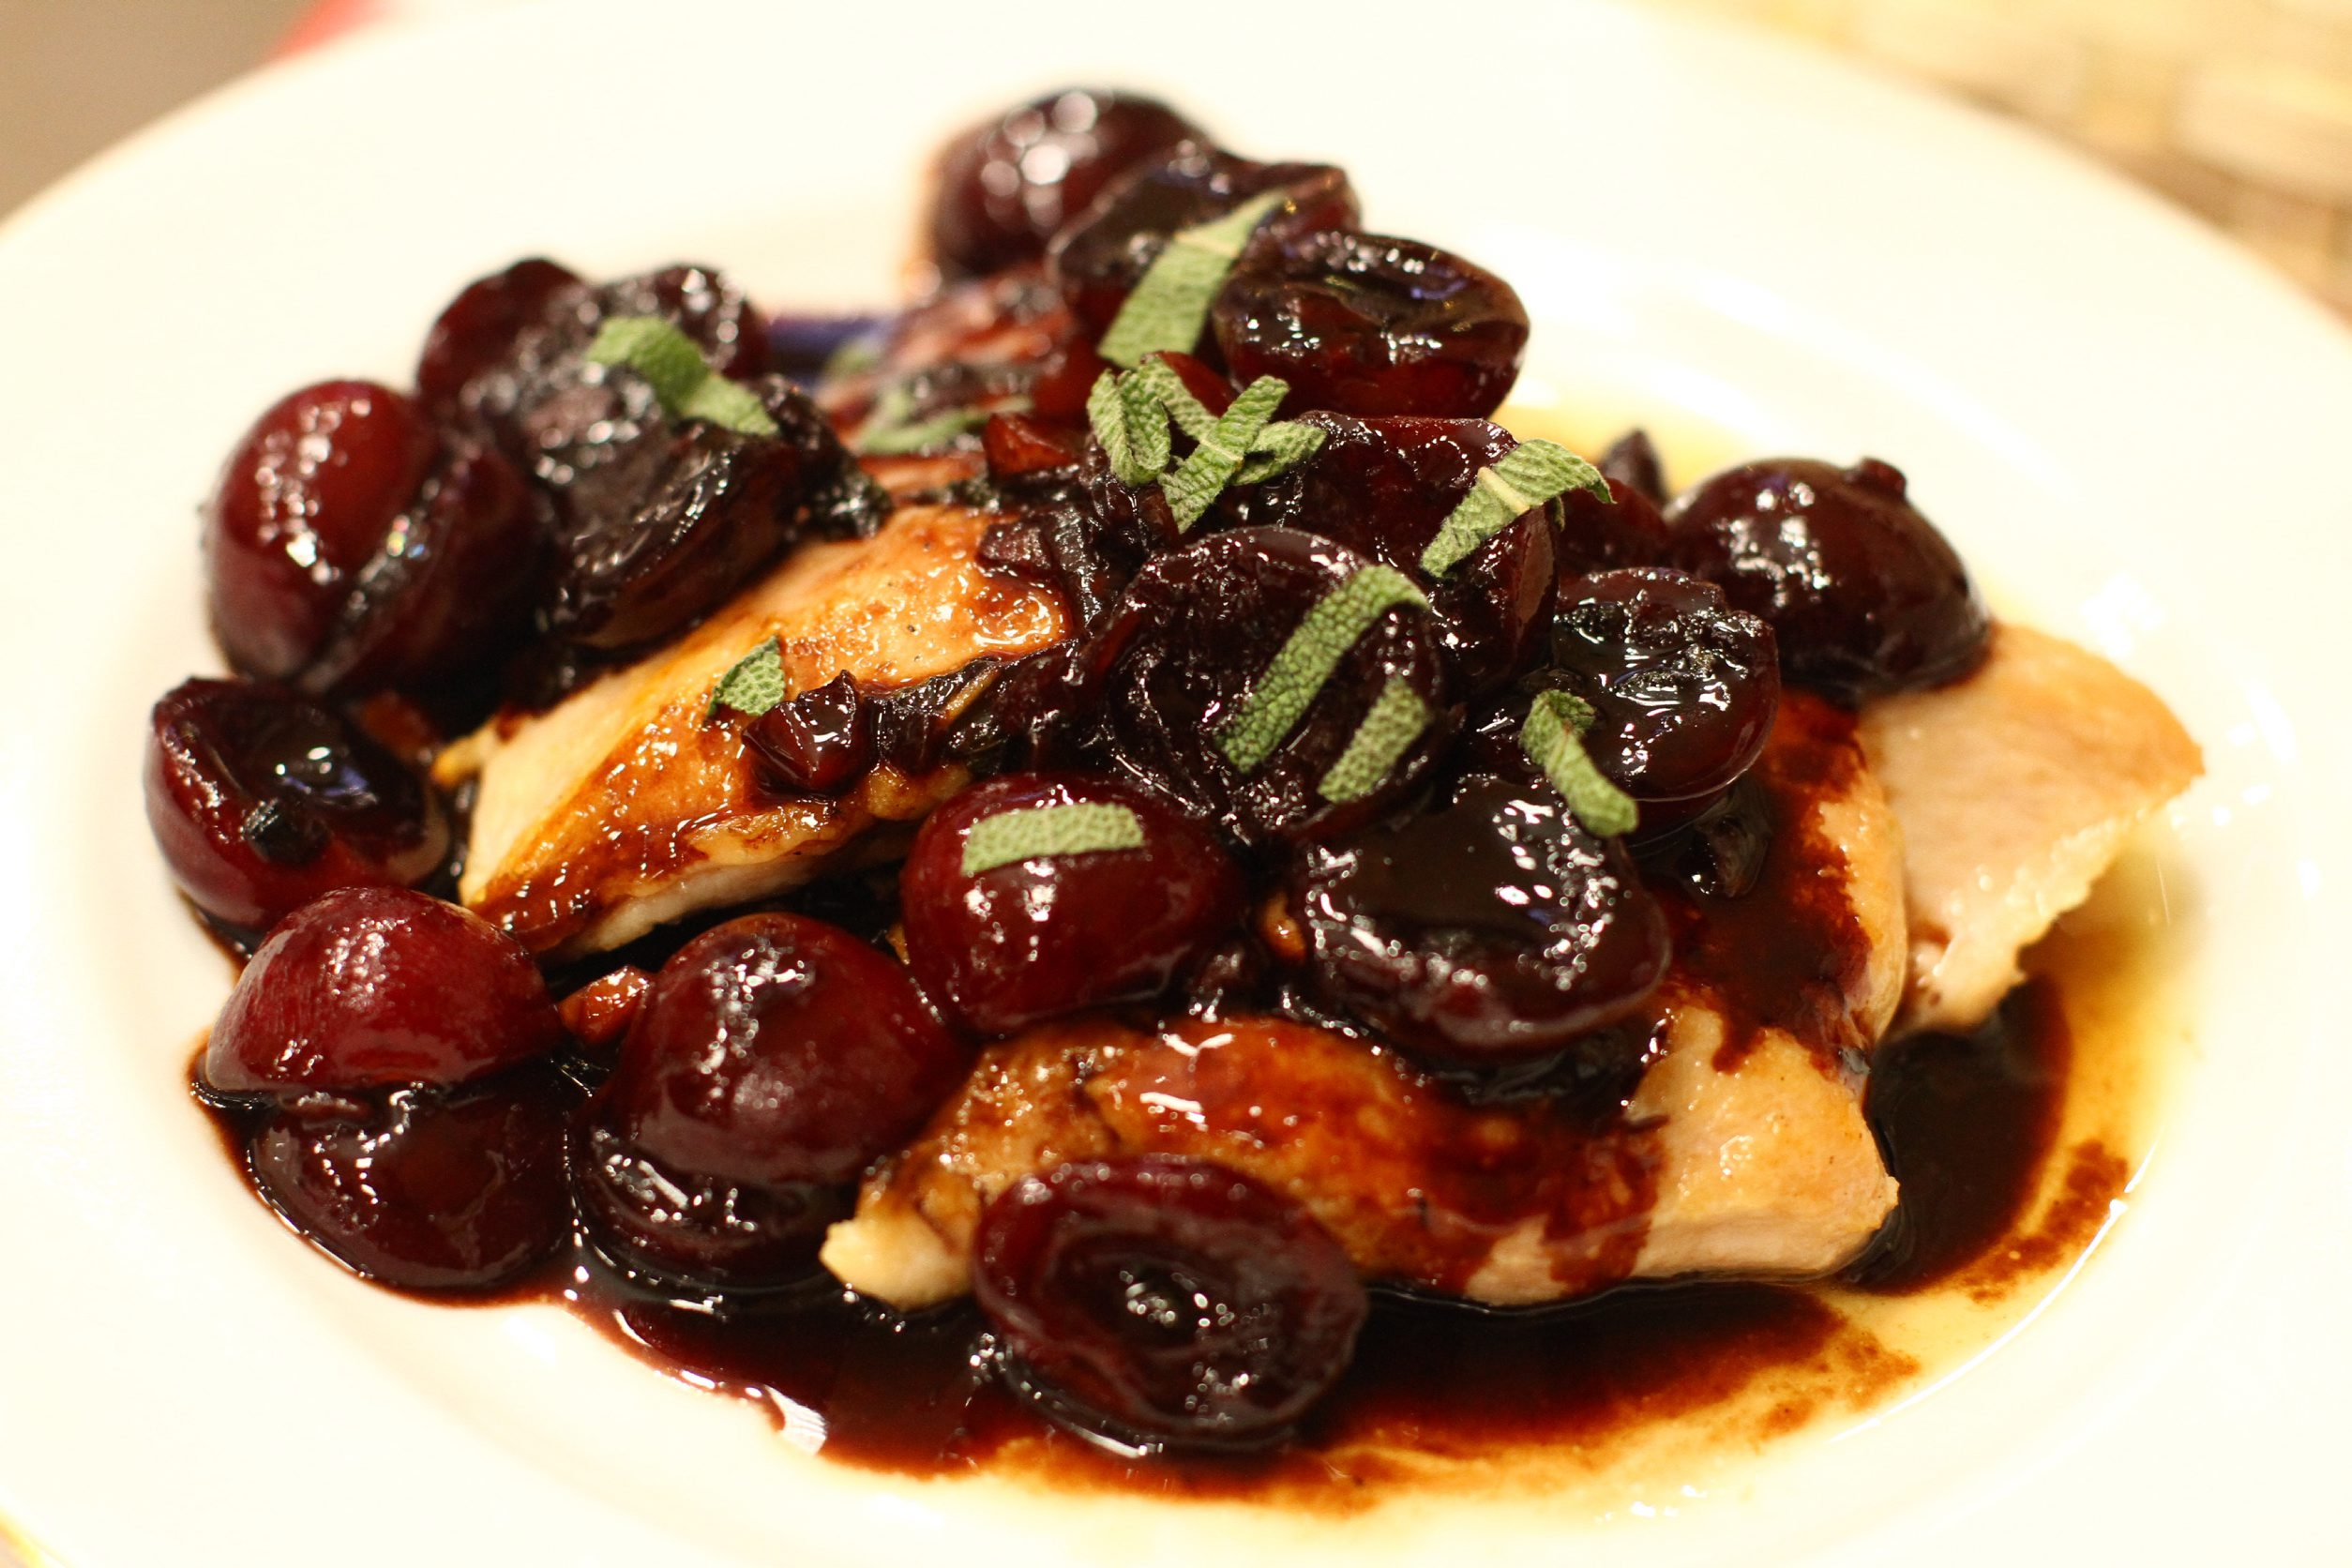 Cherry Pan-seared Chicken Breast with Cherry Balsamic Sauce